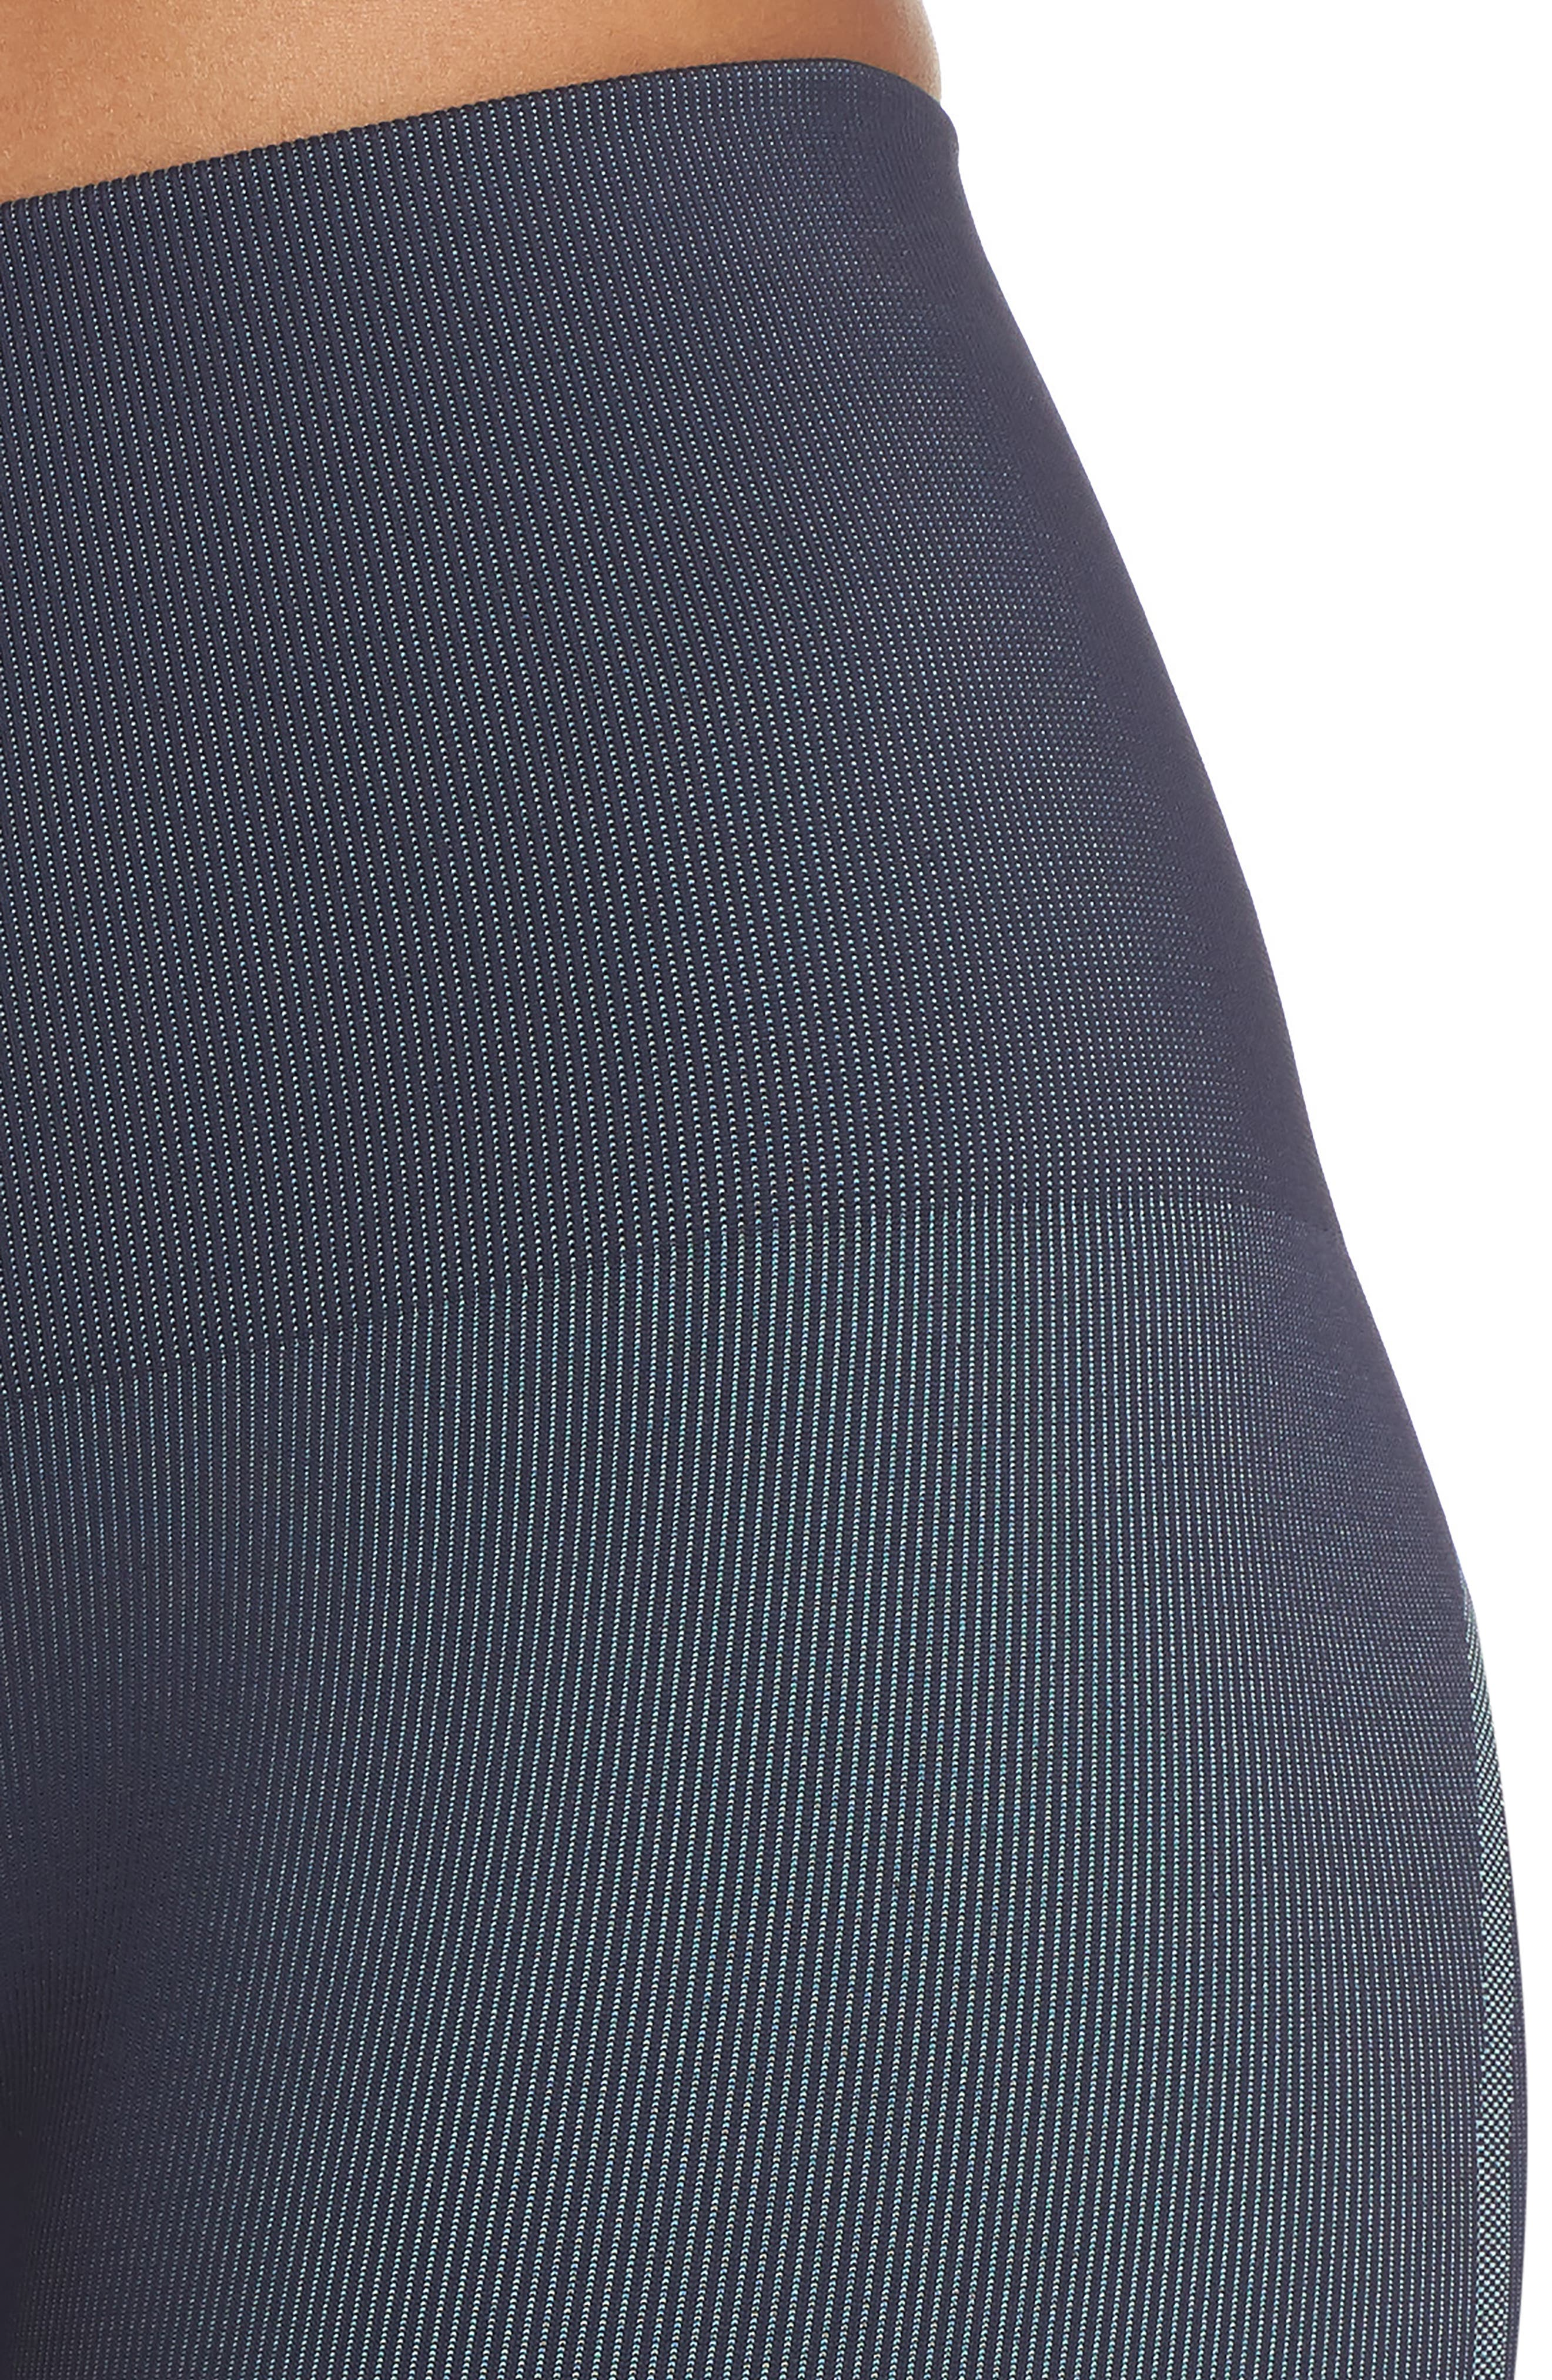 Spectrum High Waist Seamless Leggings,                             Alternate thumbnail 3, color,                             Deep Sea Navy